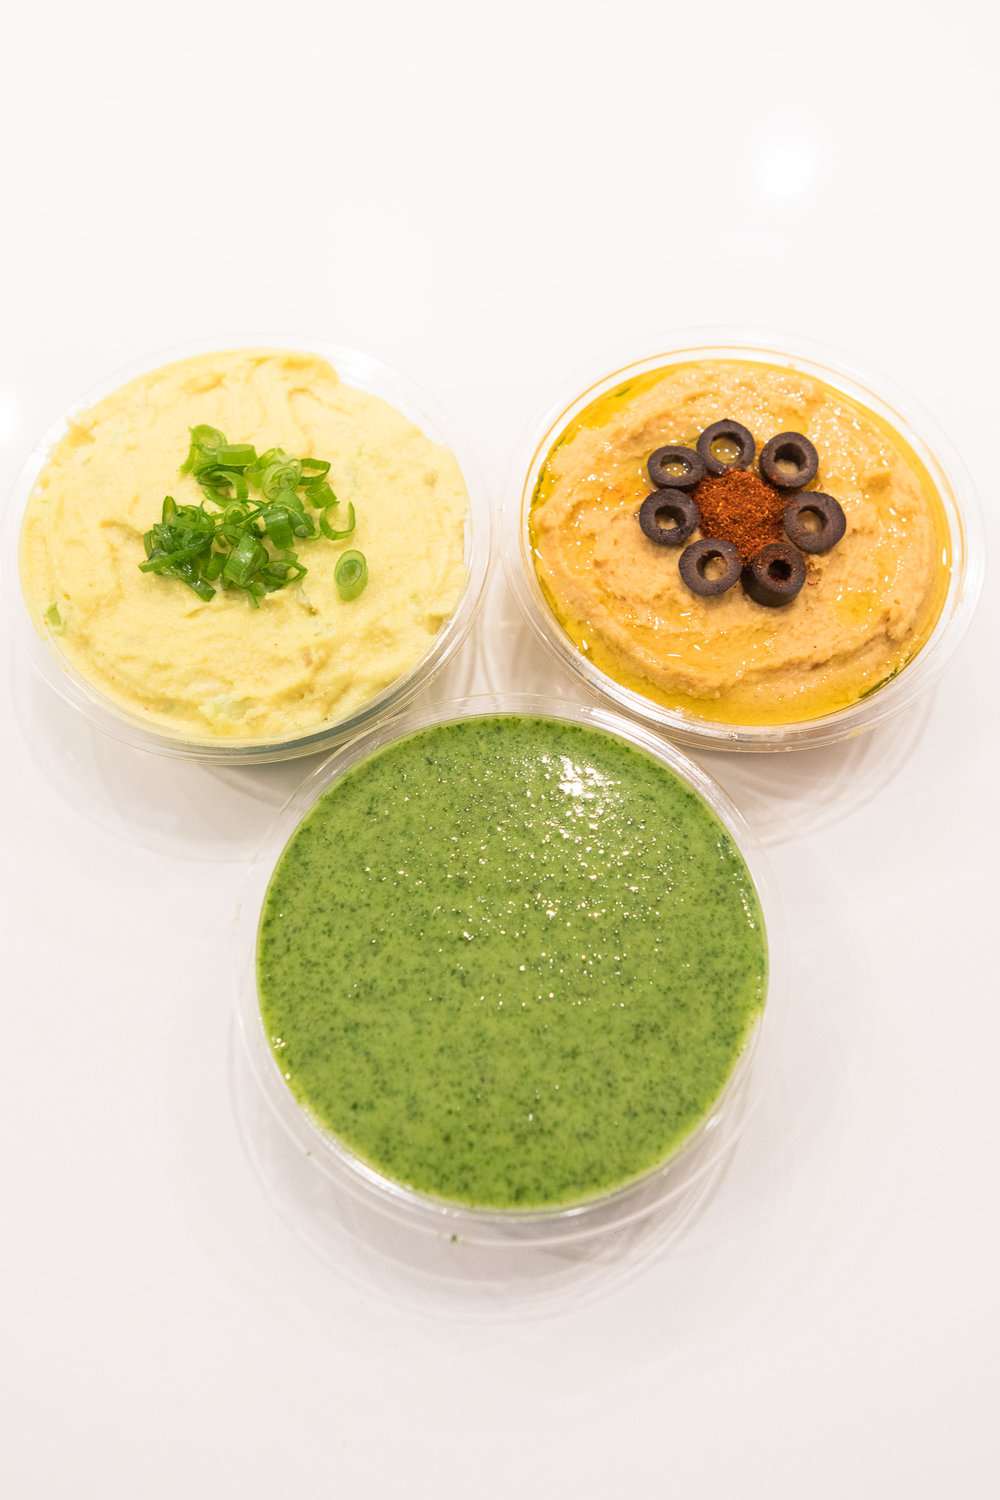 Maka-vegan-cafe-paia-maui-hummus-collection-1.jpg